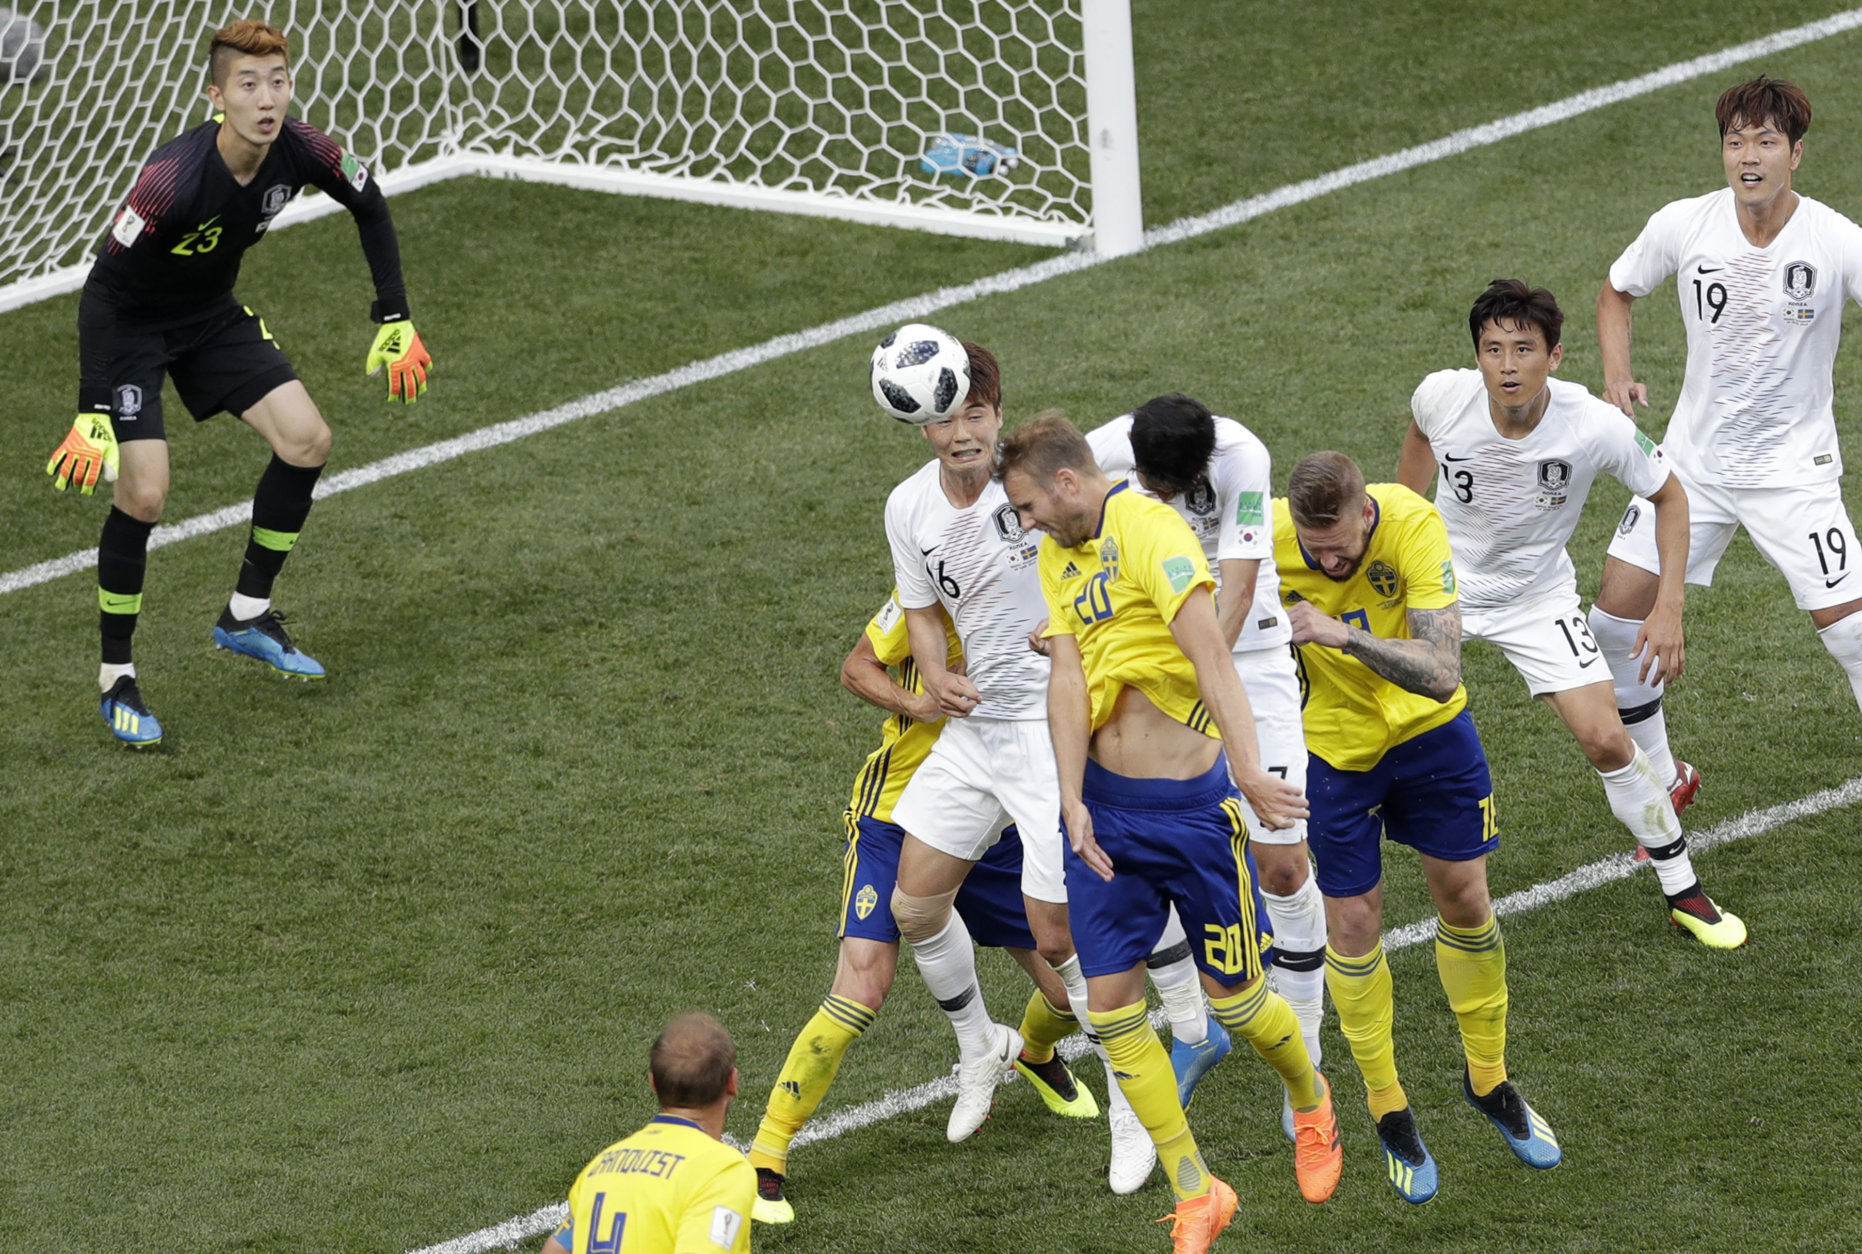 Sweden's Emil Krafth, centre right, and South Korea's Ki Sung-yueng, centre left, head the ball during the group F match between Sweden and South Korea at the 2018 soccer World Cup in the Nizhny Novgorod stadium in Nizhny Novgorod, Russia, Monday, June 18, 2018. (AP Photo/Michael Sohn)